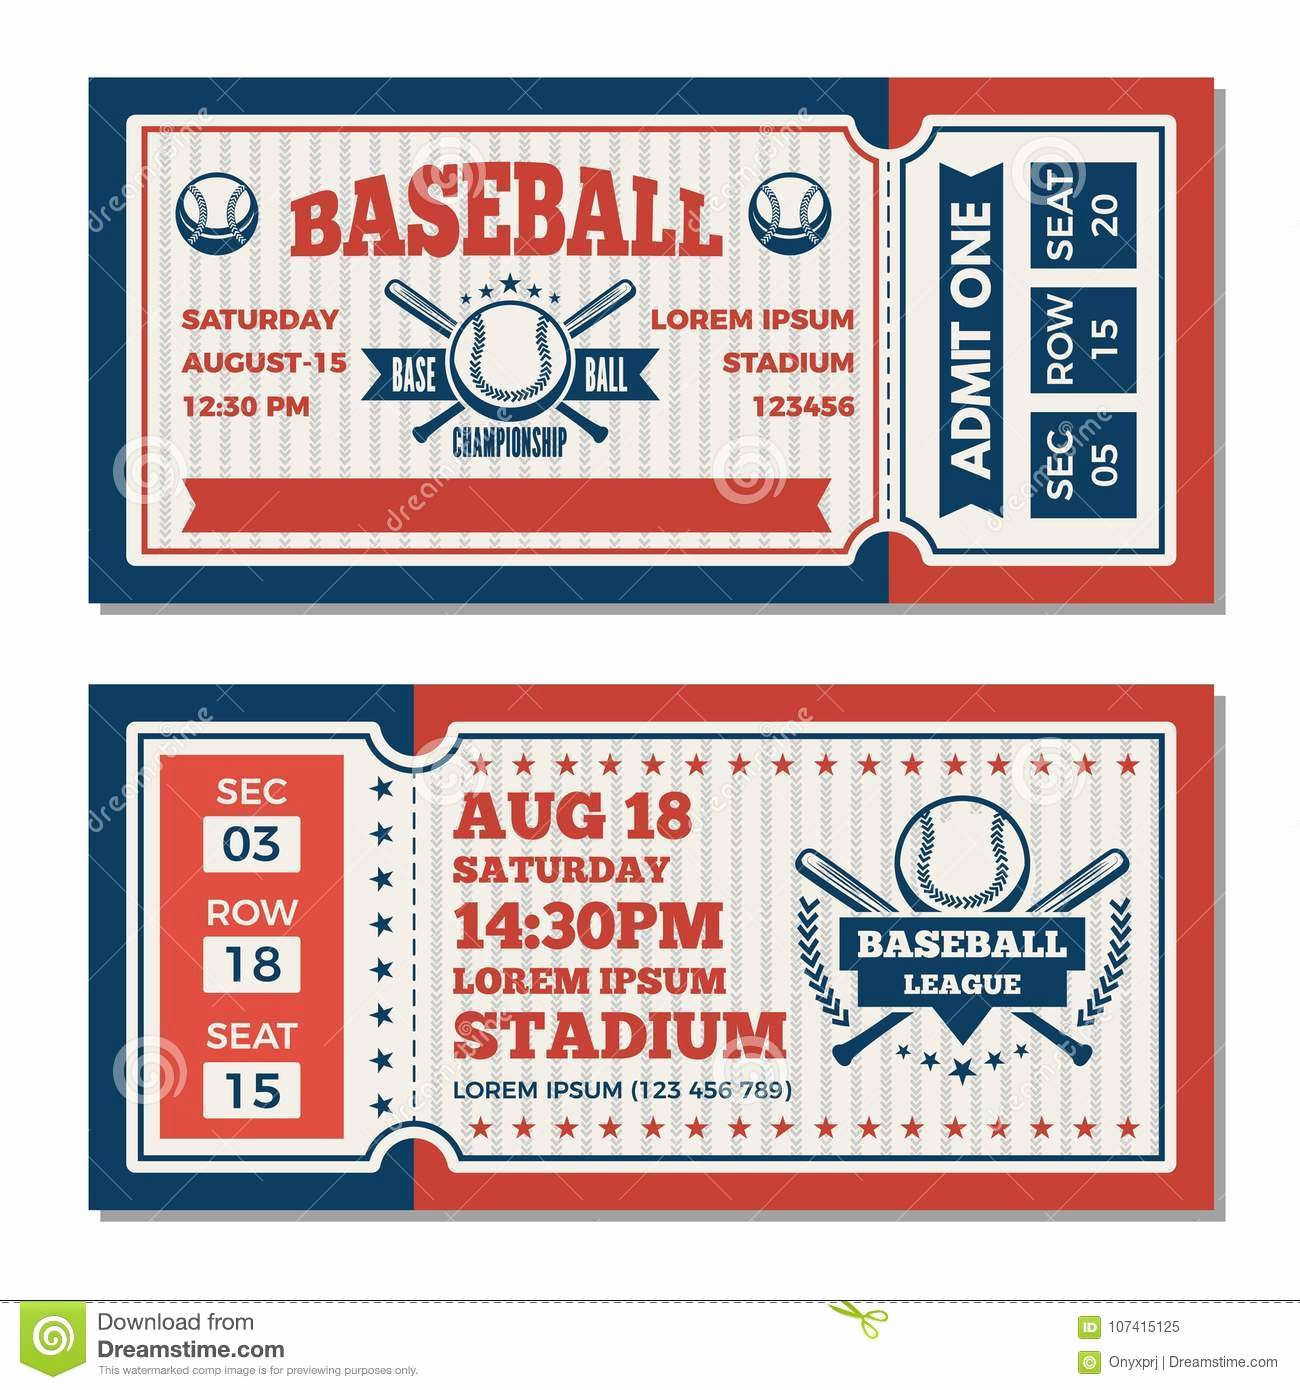 Baseball Ticket Template Free Unique Tickets Design Template at Baseball tournament Stock